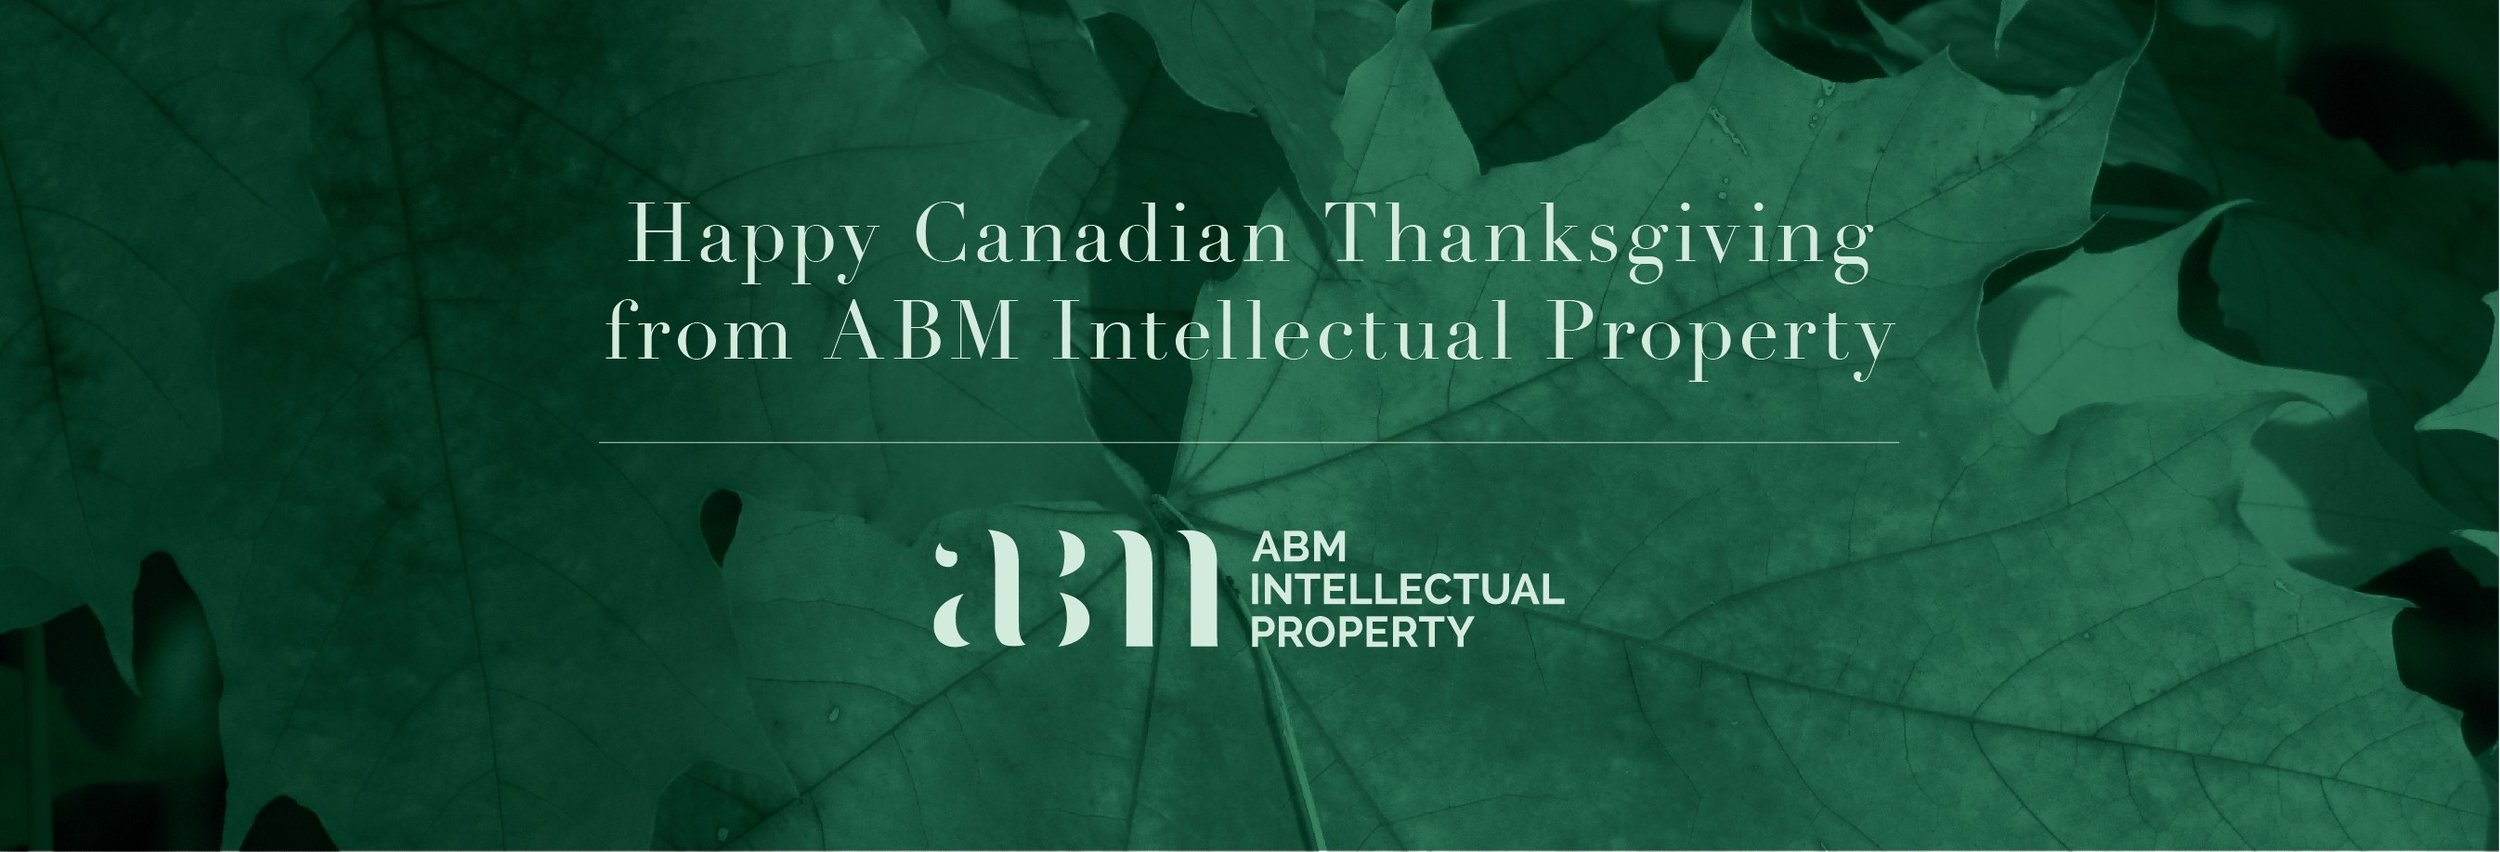 ABM IP wishes you a happy Canadian Thanksgiving!  Please note as this is a statutory holiday,  the Canadian Intellectual Property Office will be closed on Monday October 9, 2017.